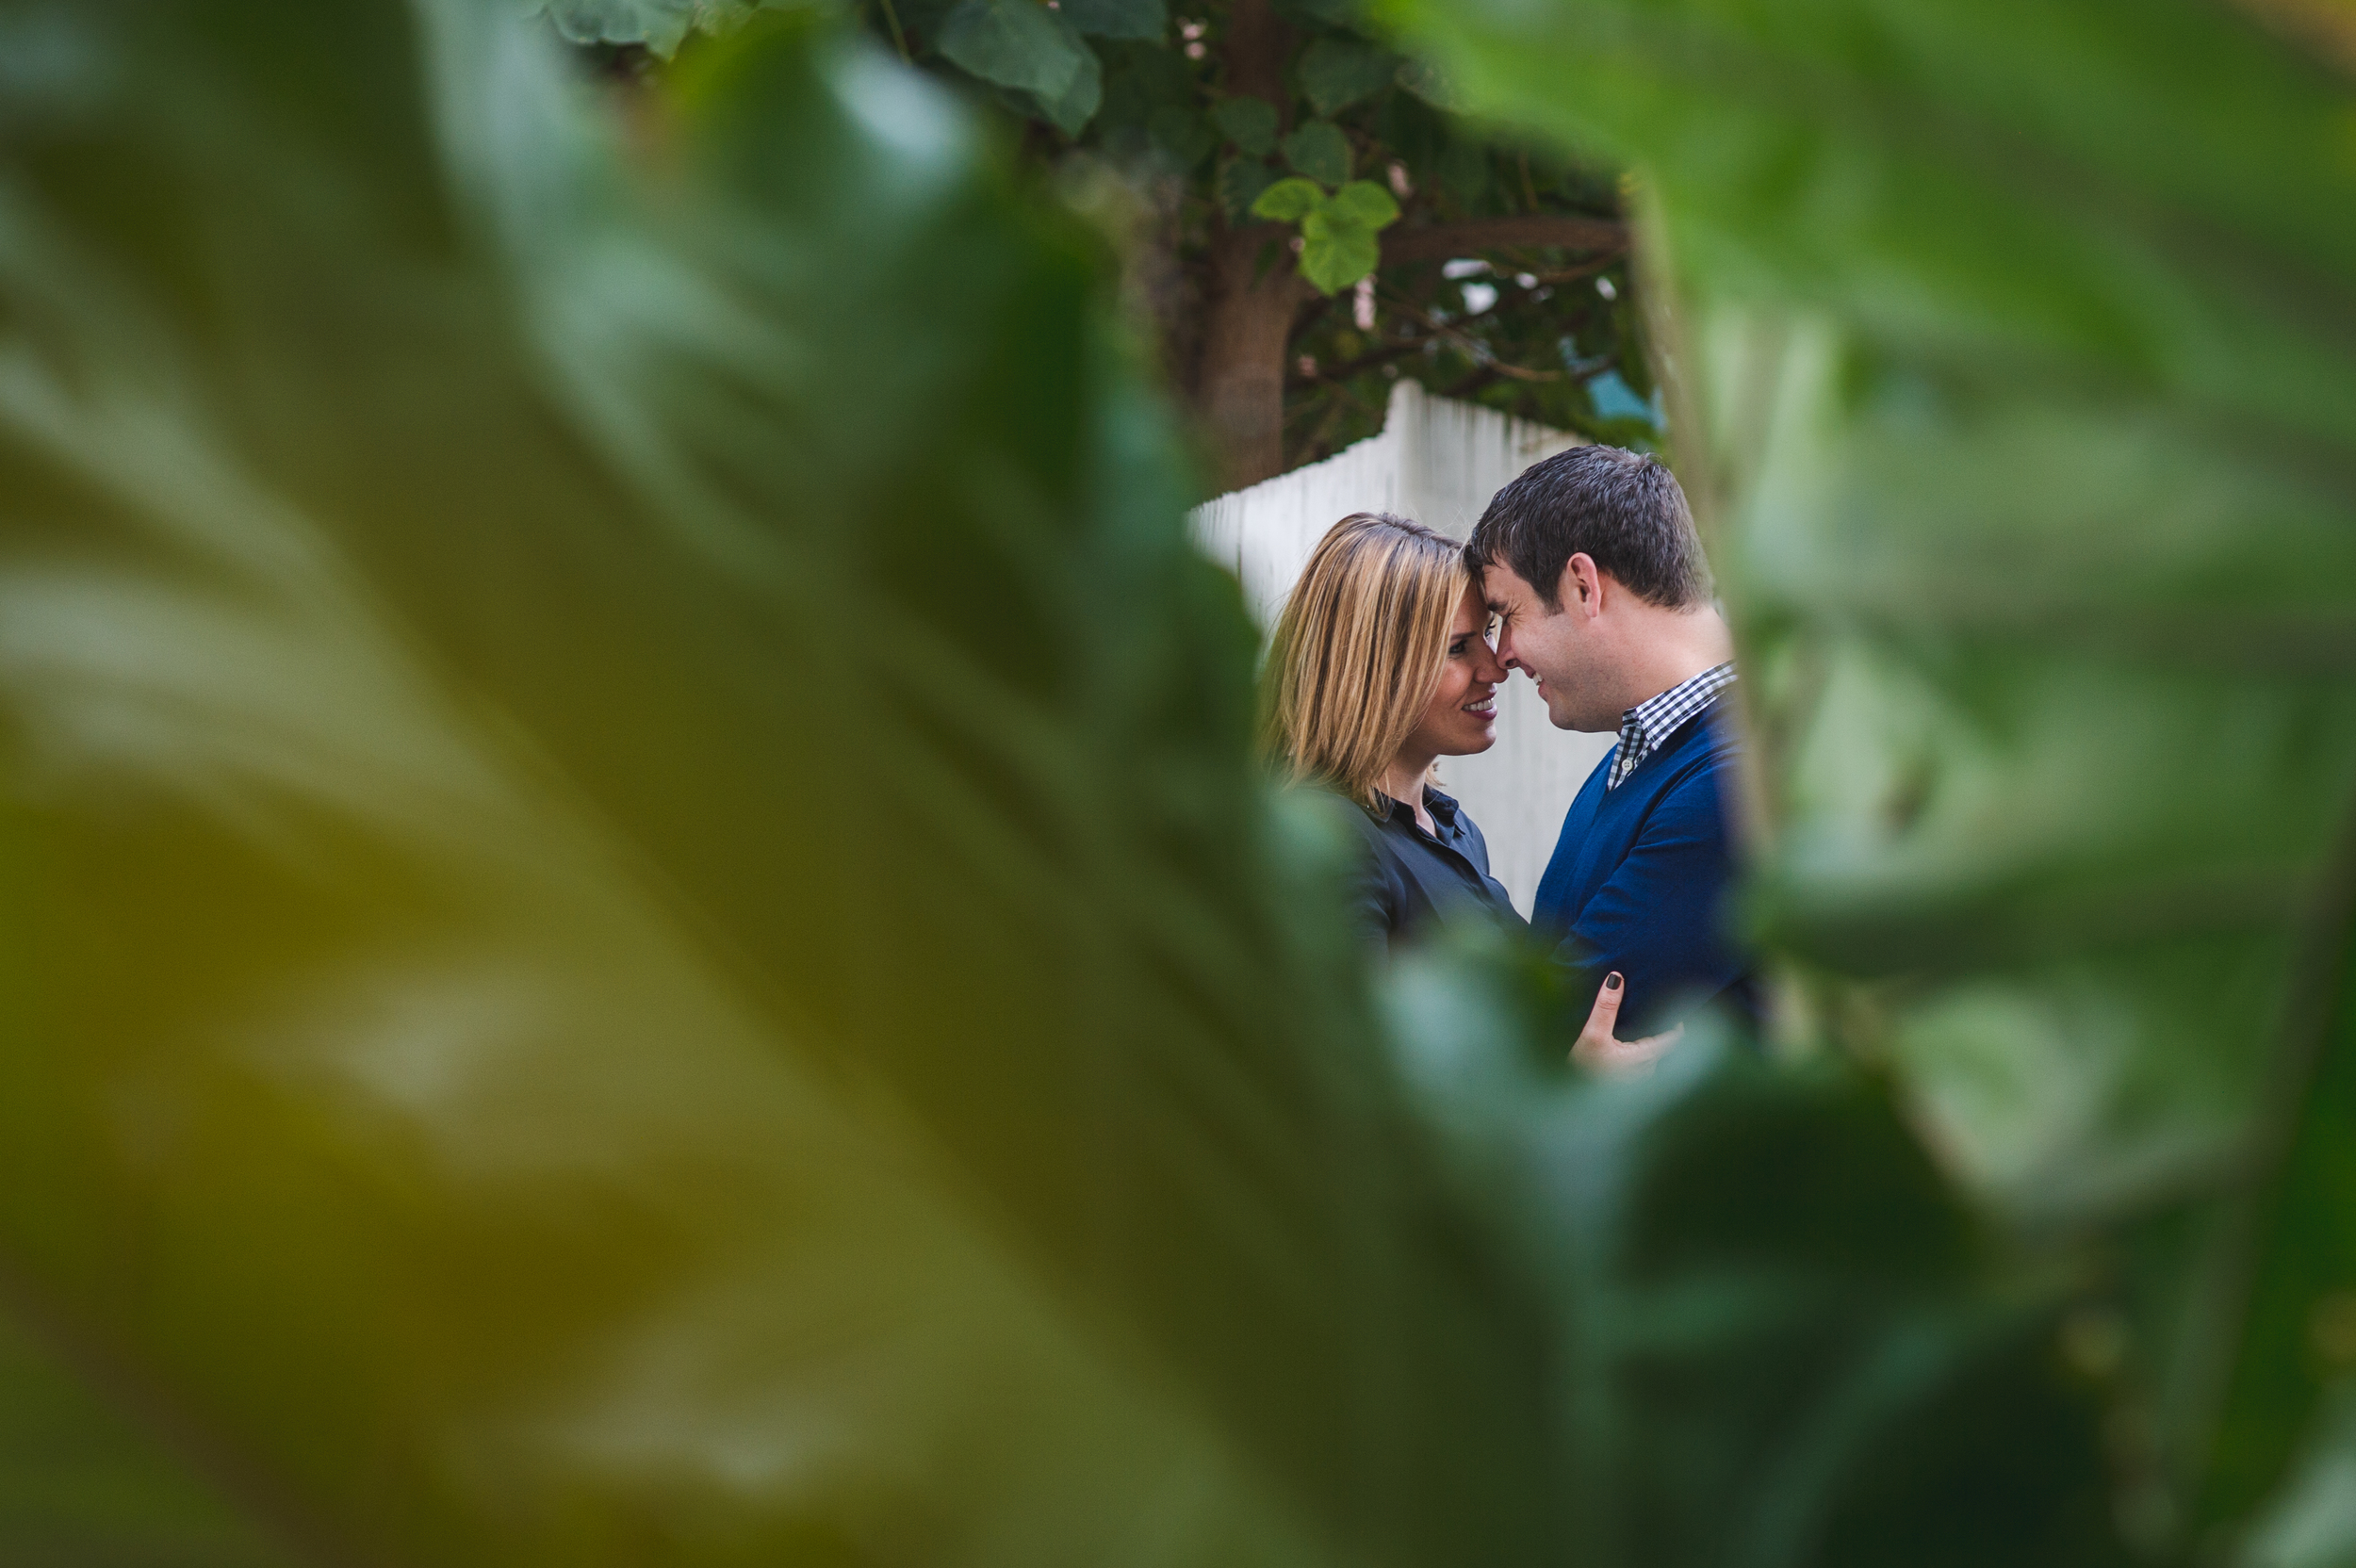 Engagement session Freedom Park Arlington VA by Mantas Kubilinskas-3.jpg